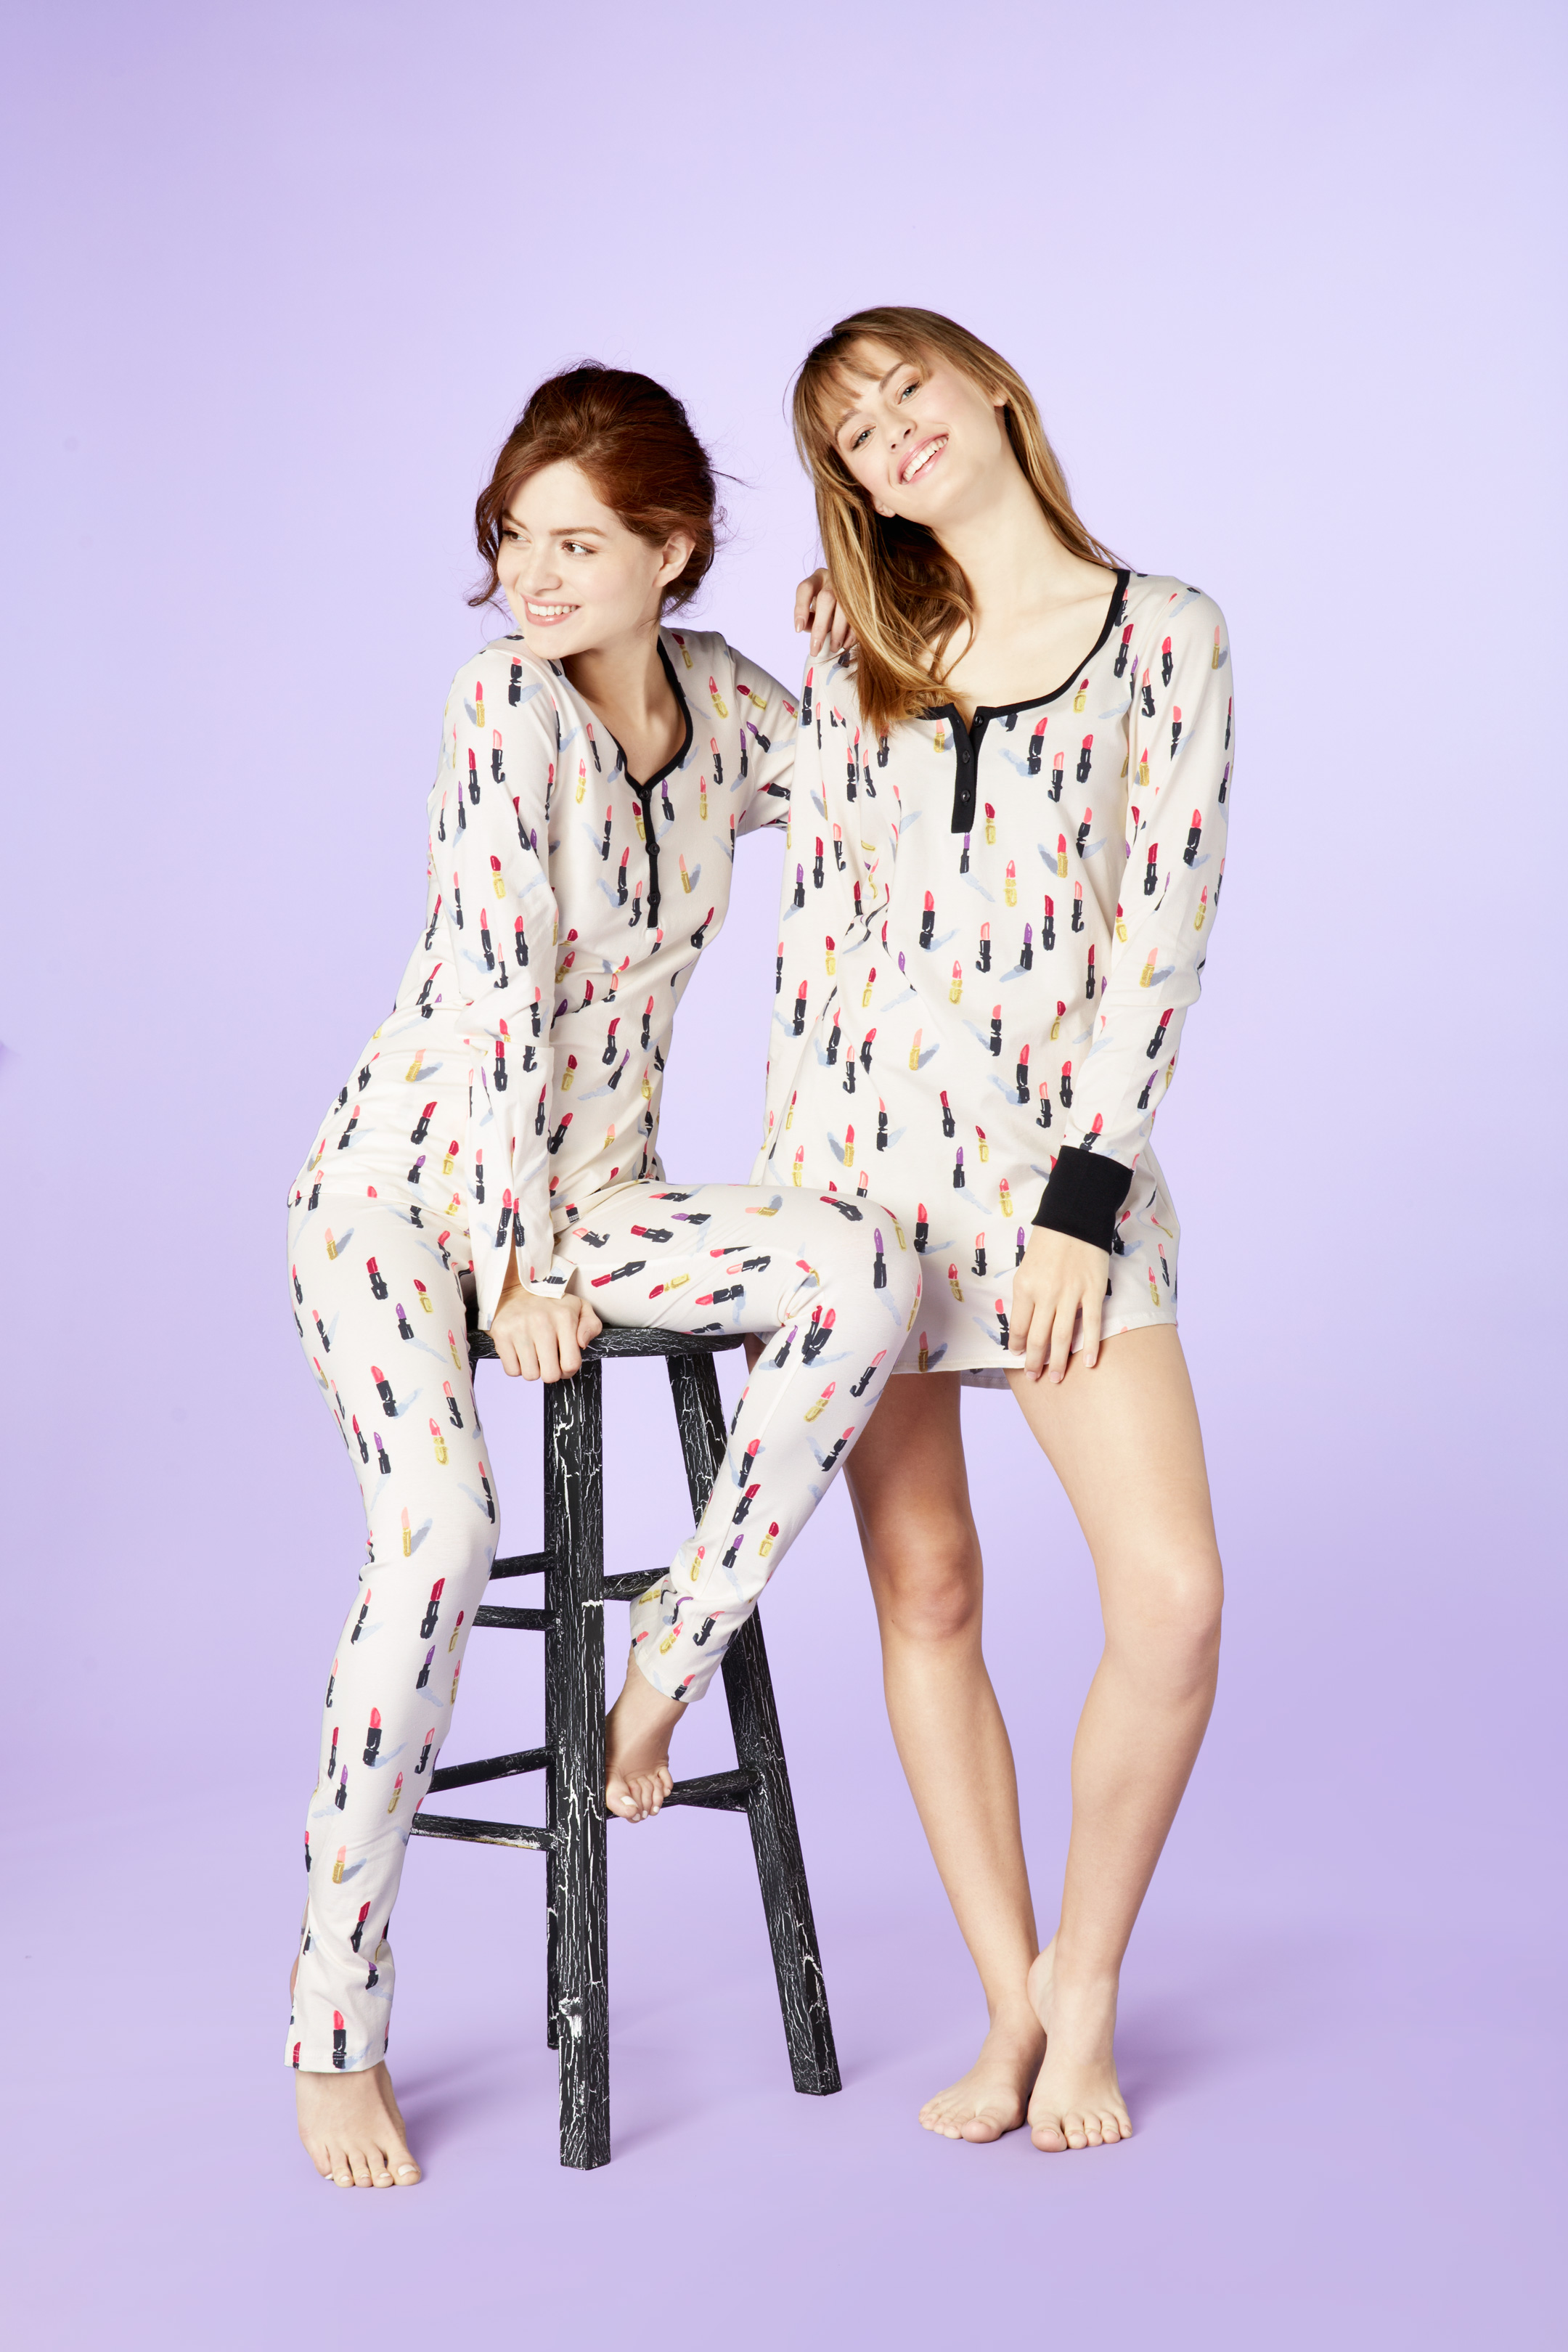 The Orlando Hotel and Bedhead Pajamas recently partnered up to launch their cool in-Room Pajama Delivery service